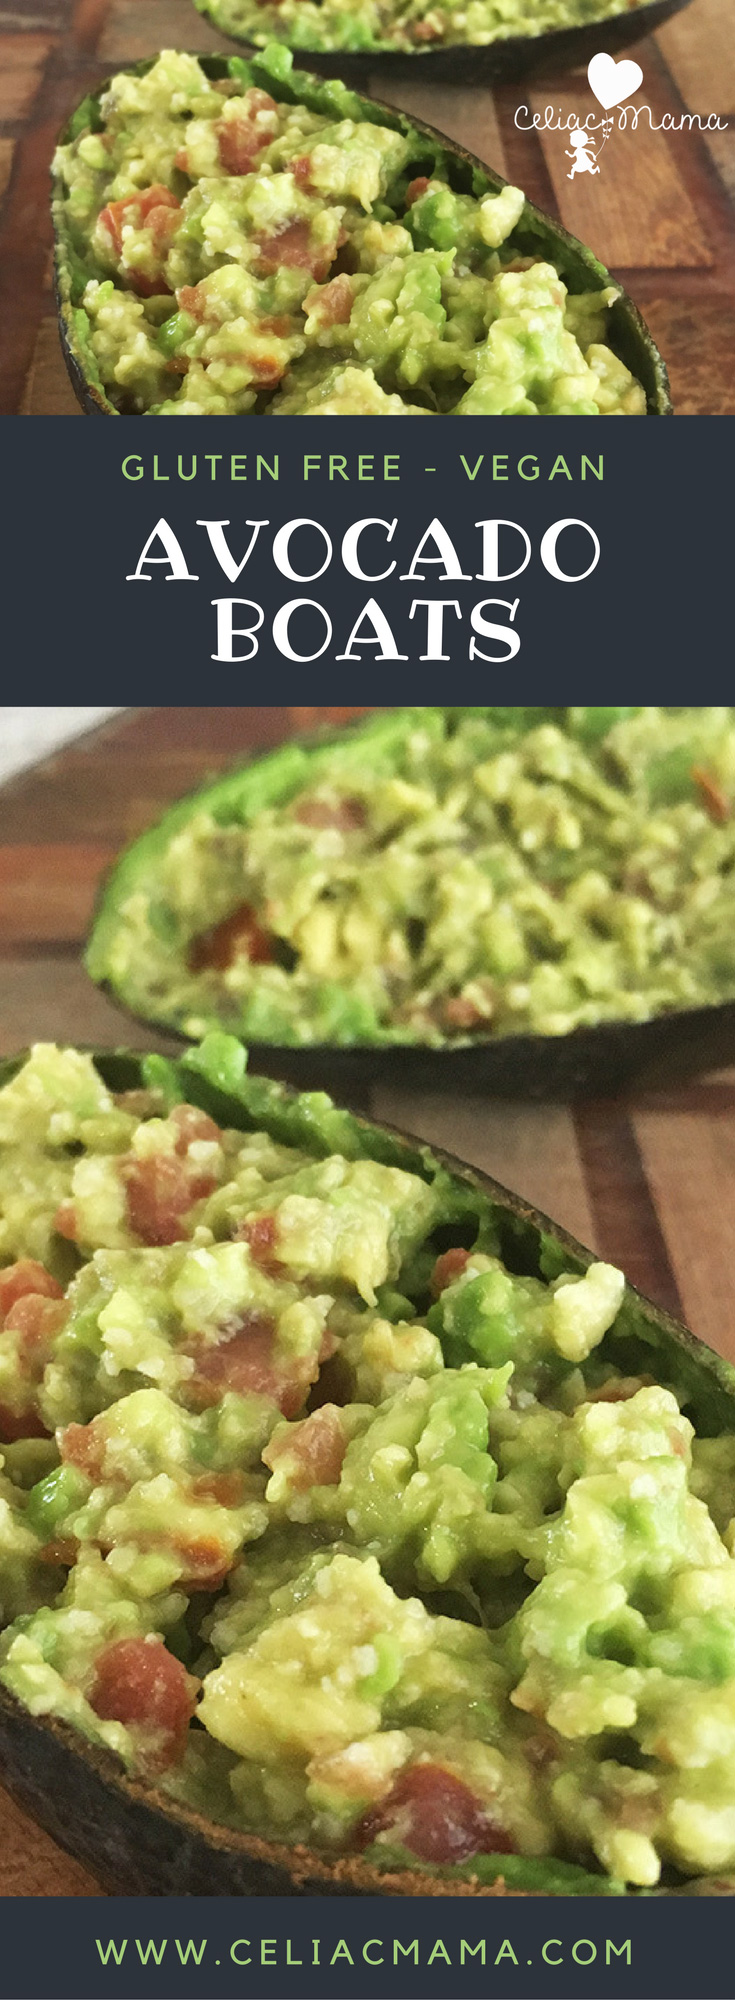 gluten-free-Avocado-Boats